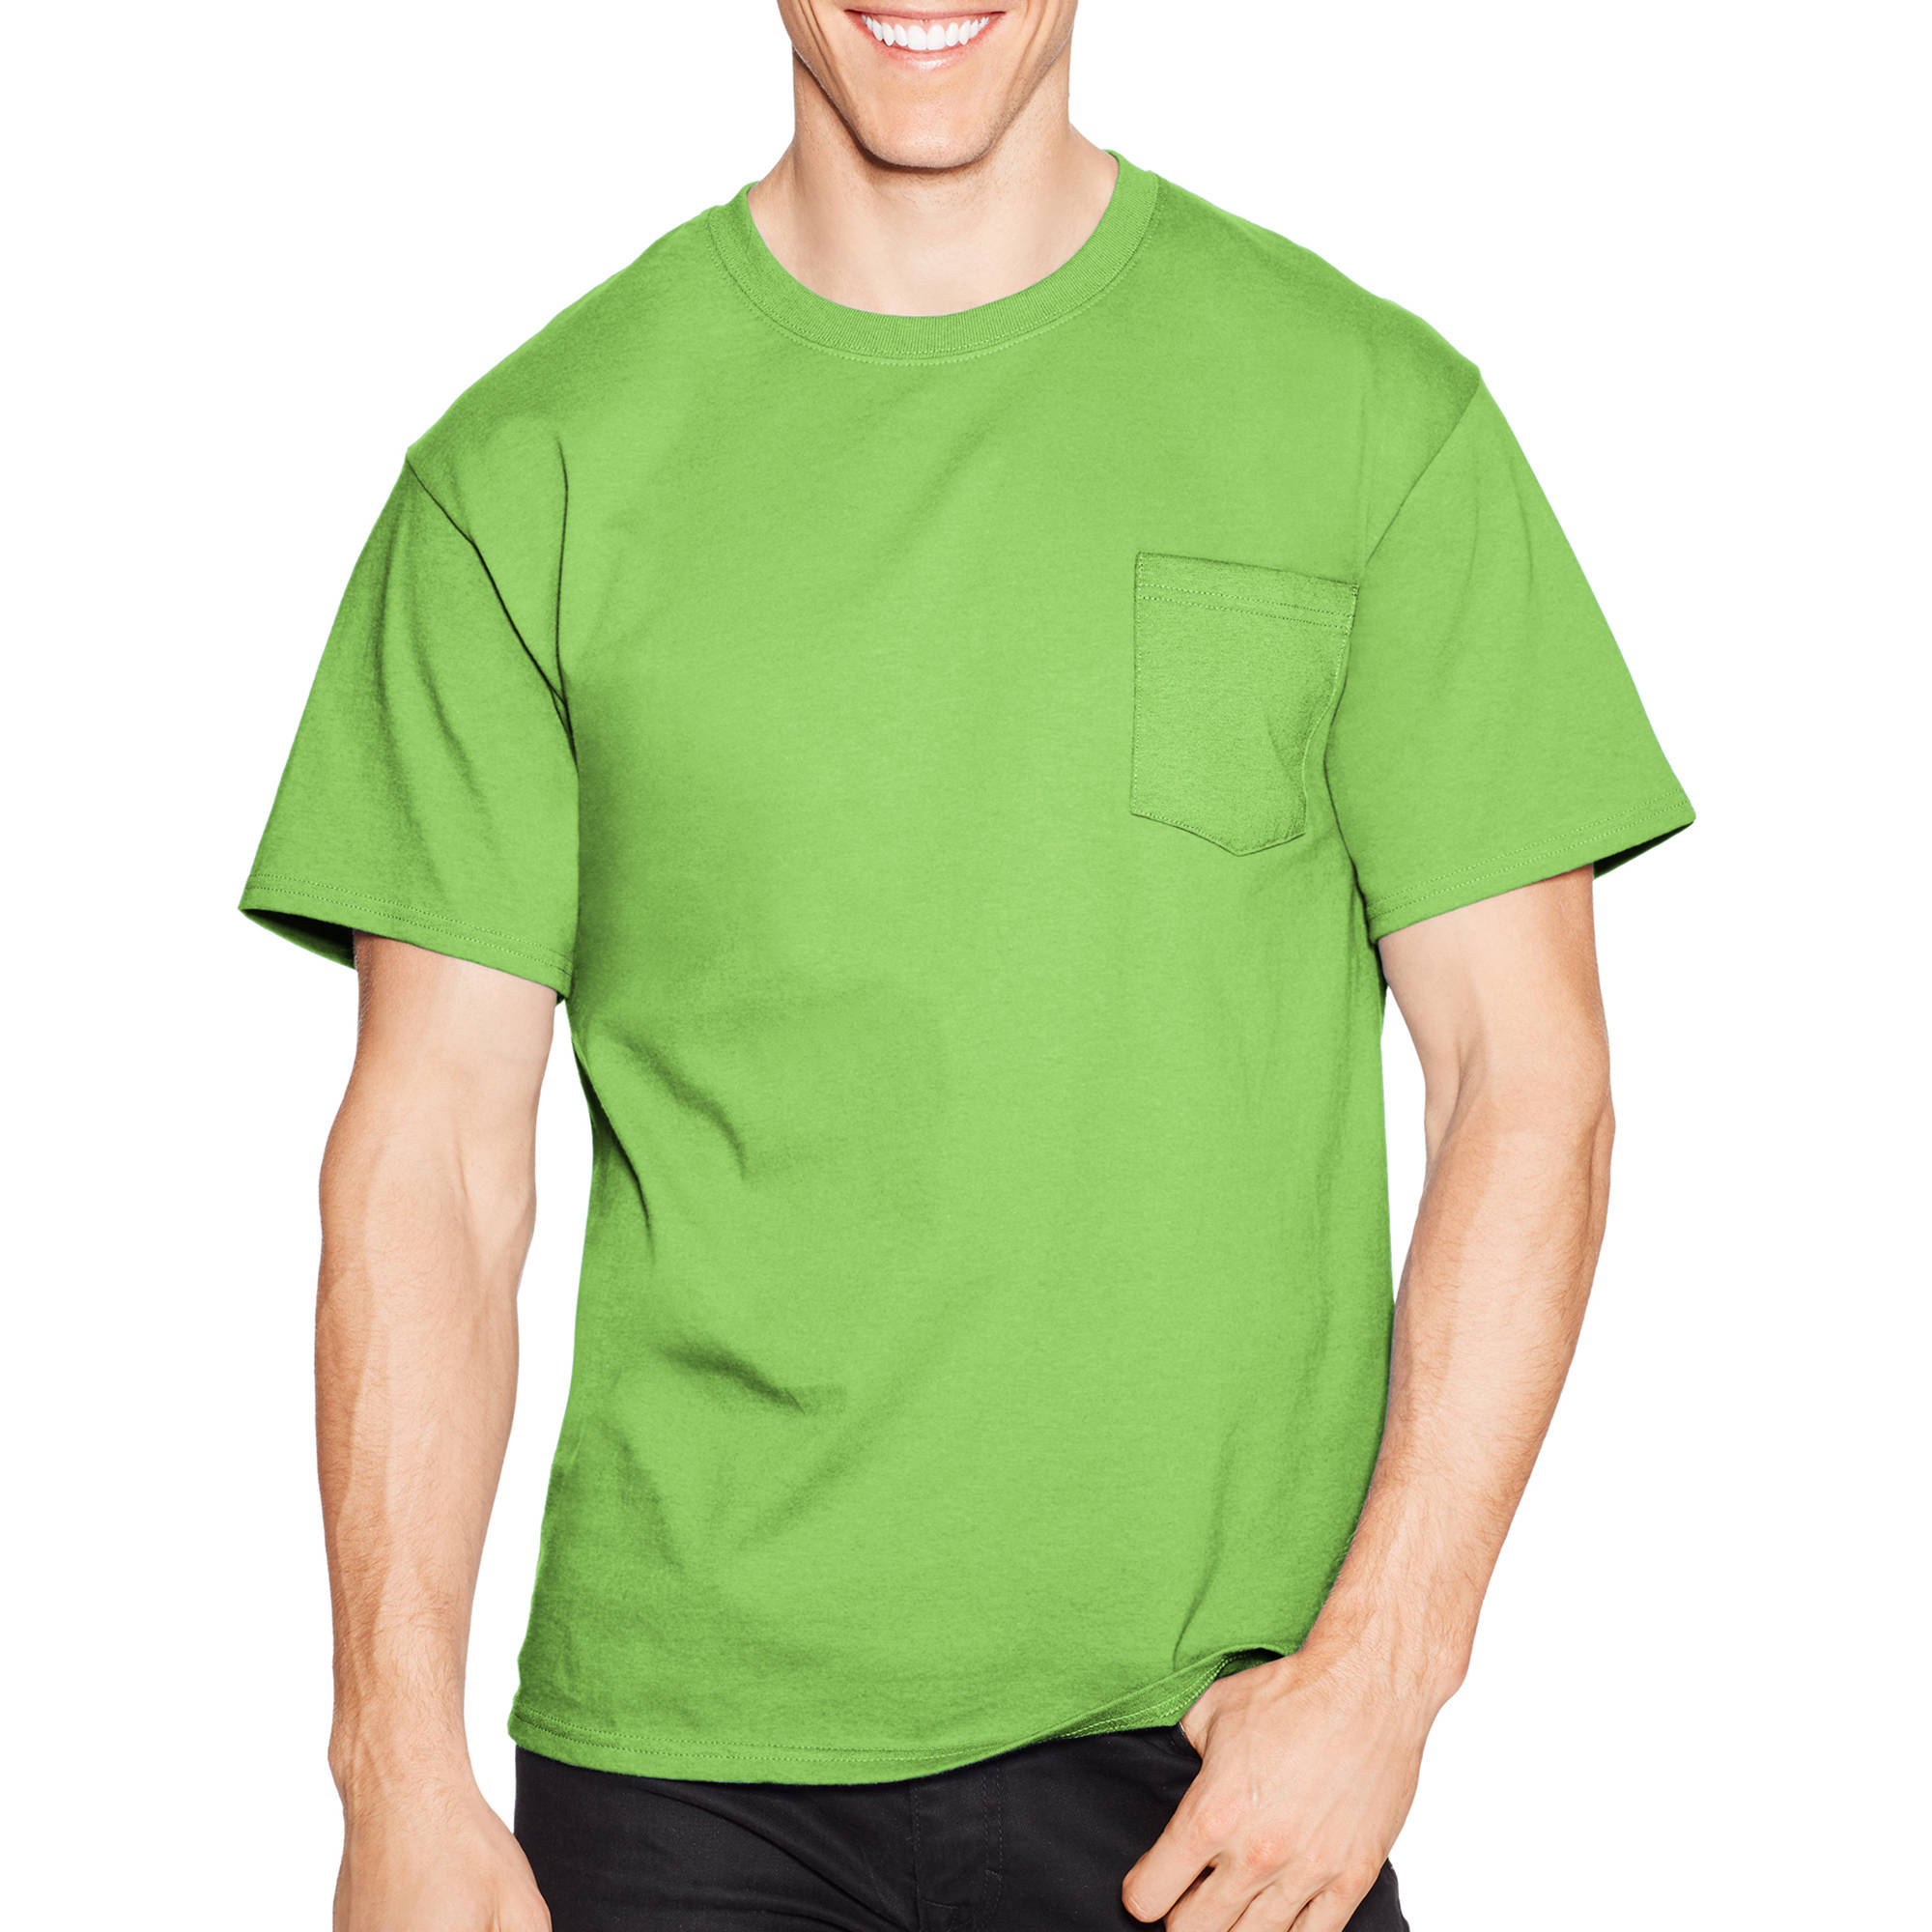 Hanes Men's Tagless Short Sleeve Pocket T-shirt